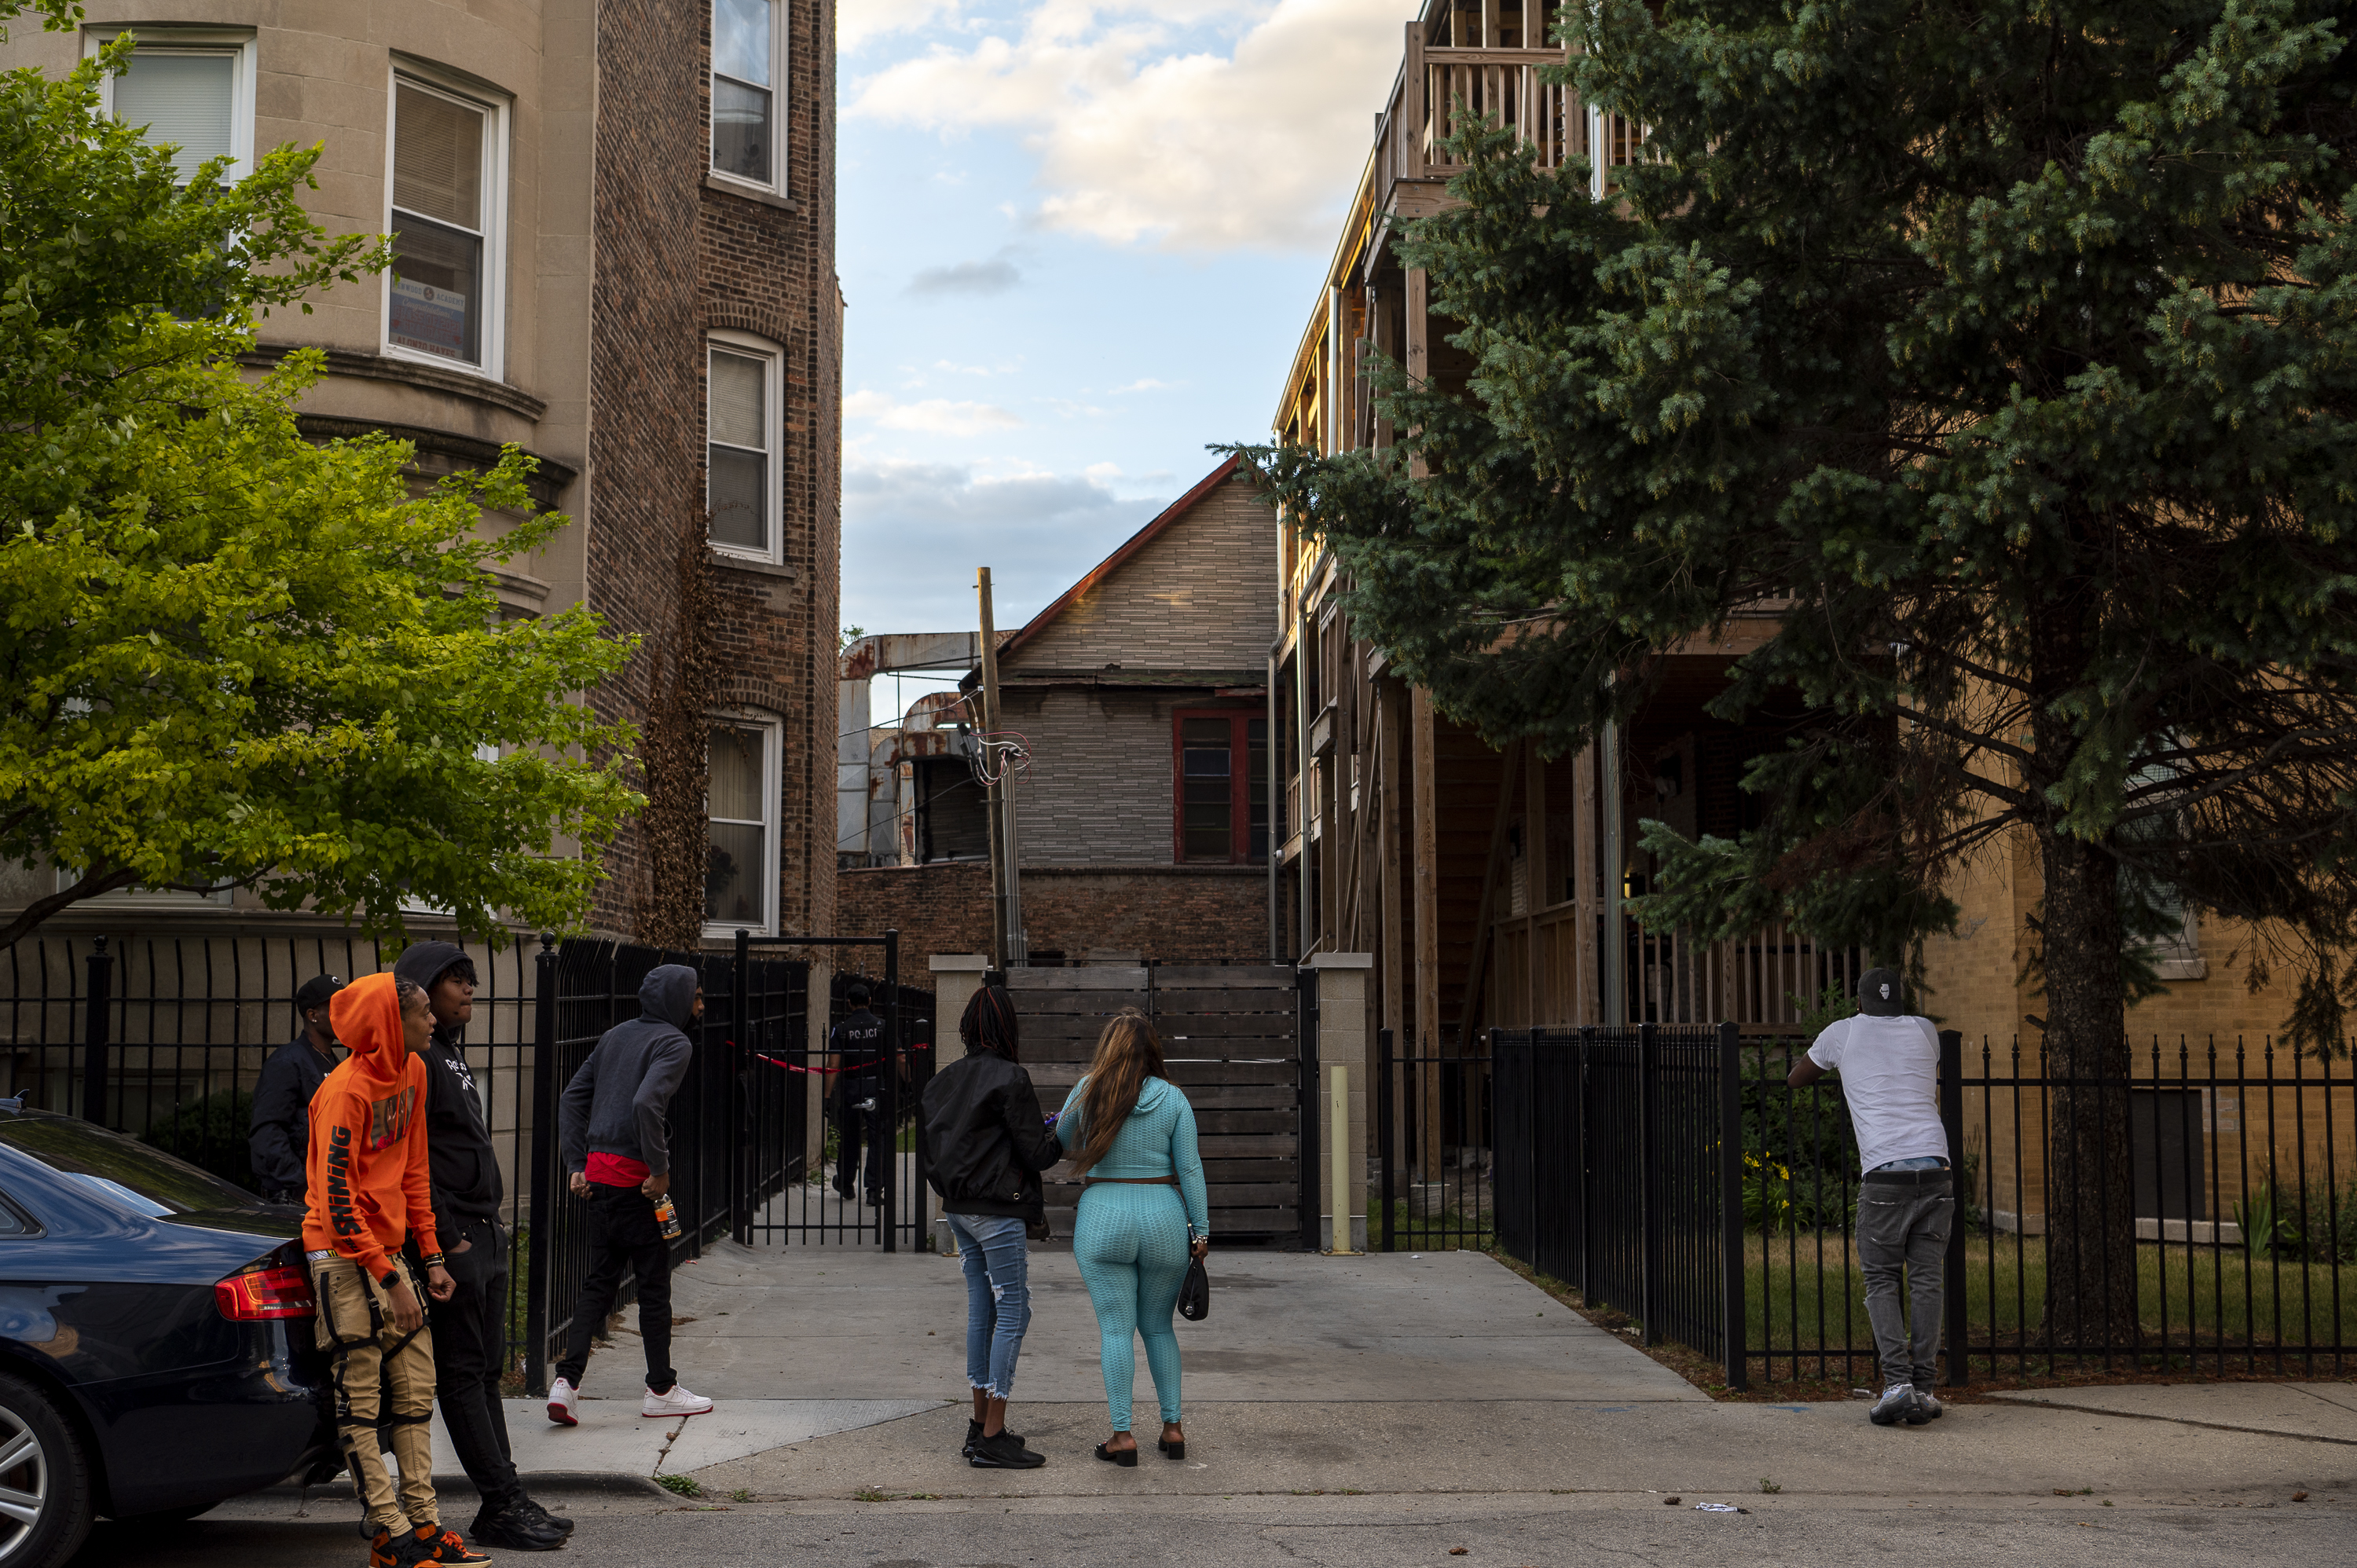 Onlookers watch as Chicago police work the scene where two people were shot and killed in the 6300 block of South Kimbark Avenue, in the Woodlawn neighborhood, Monday, June 21, 2021.